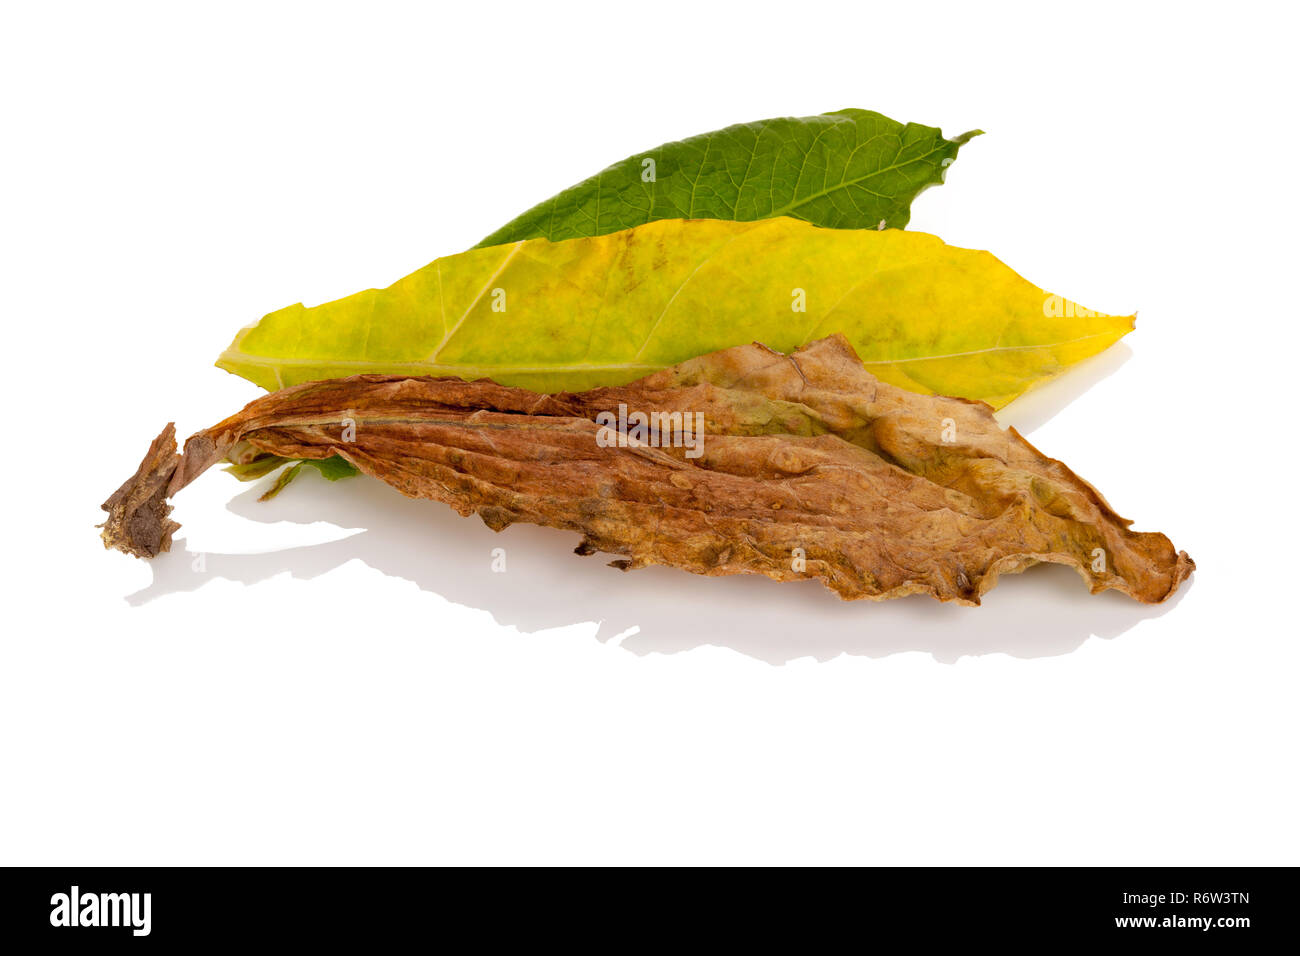 Fresh and dried tobacco leaves from above - Stock Image